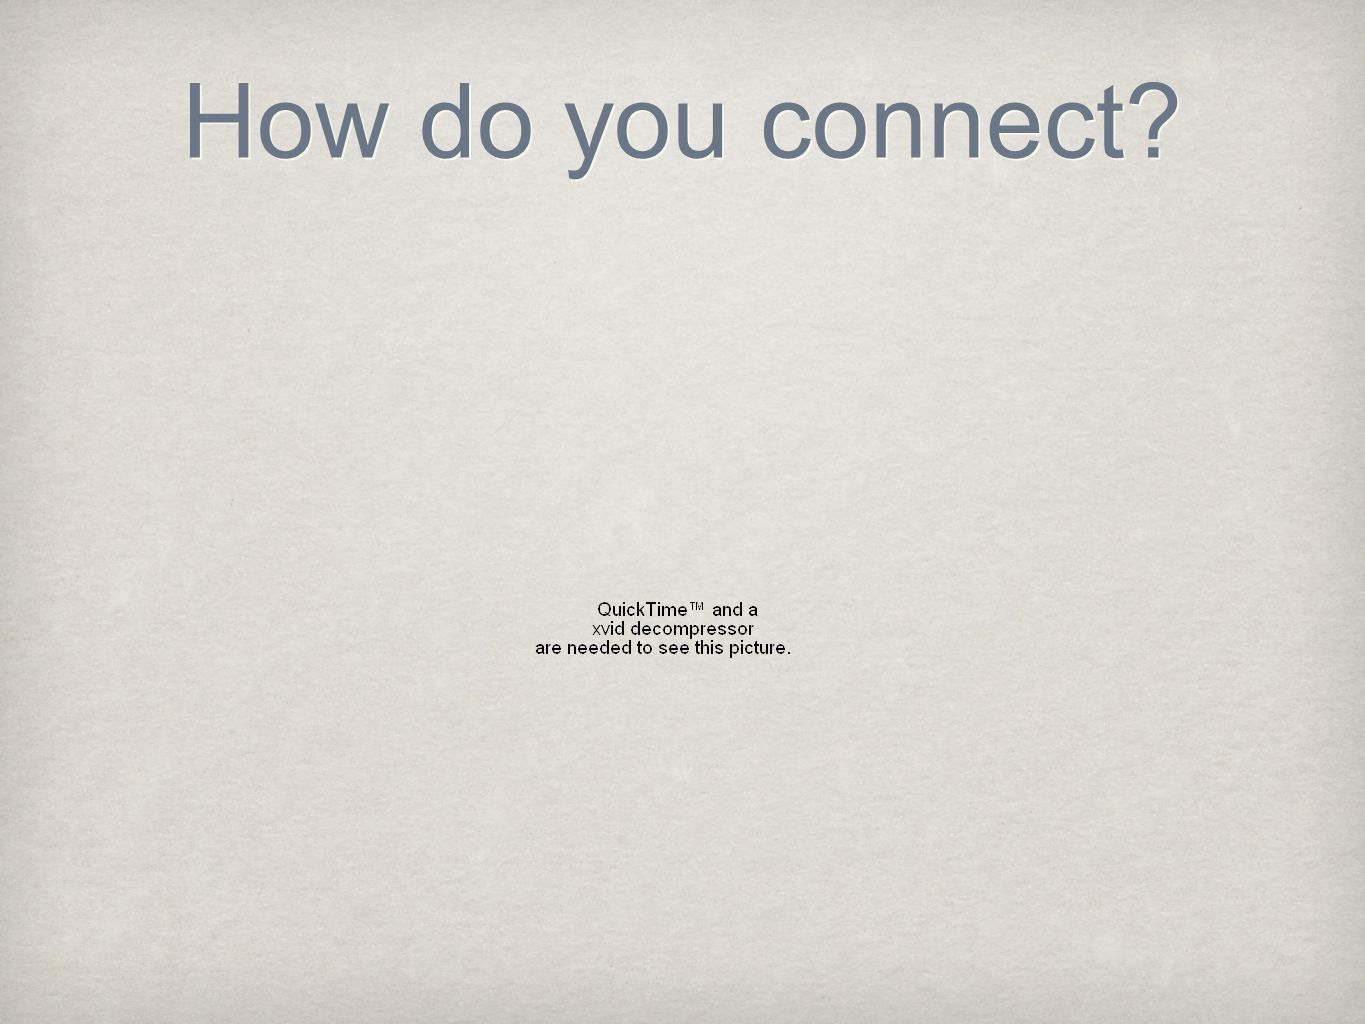 How do you connect